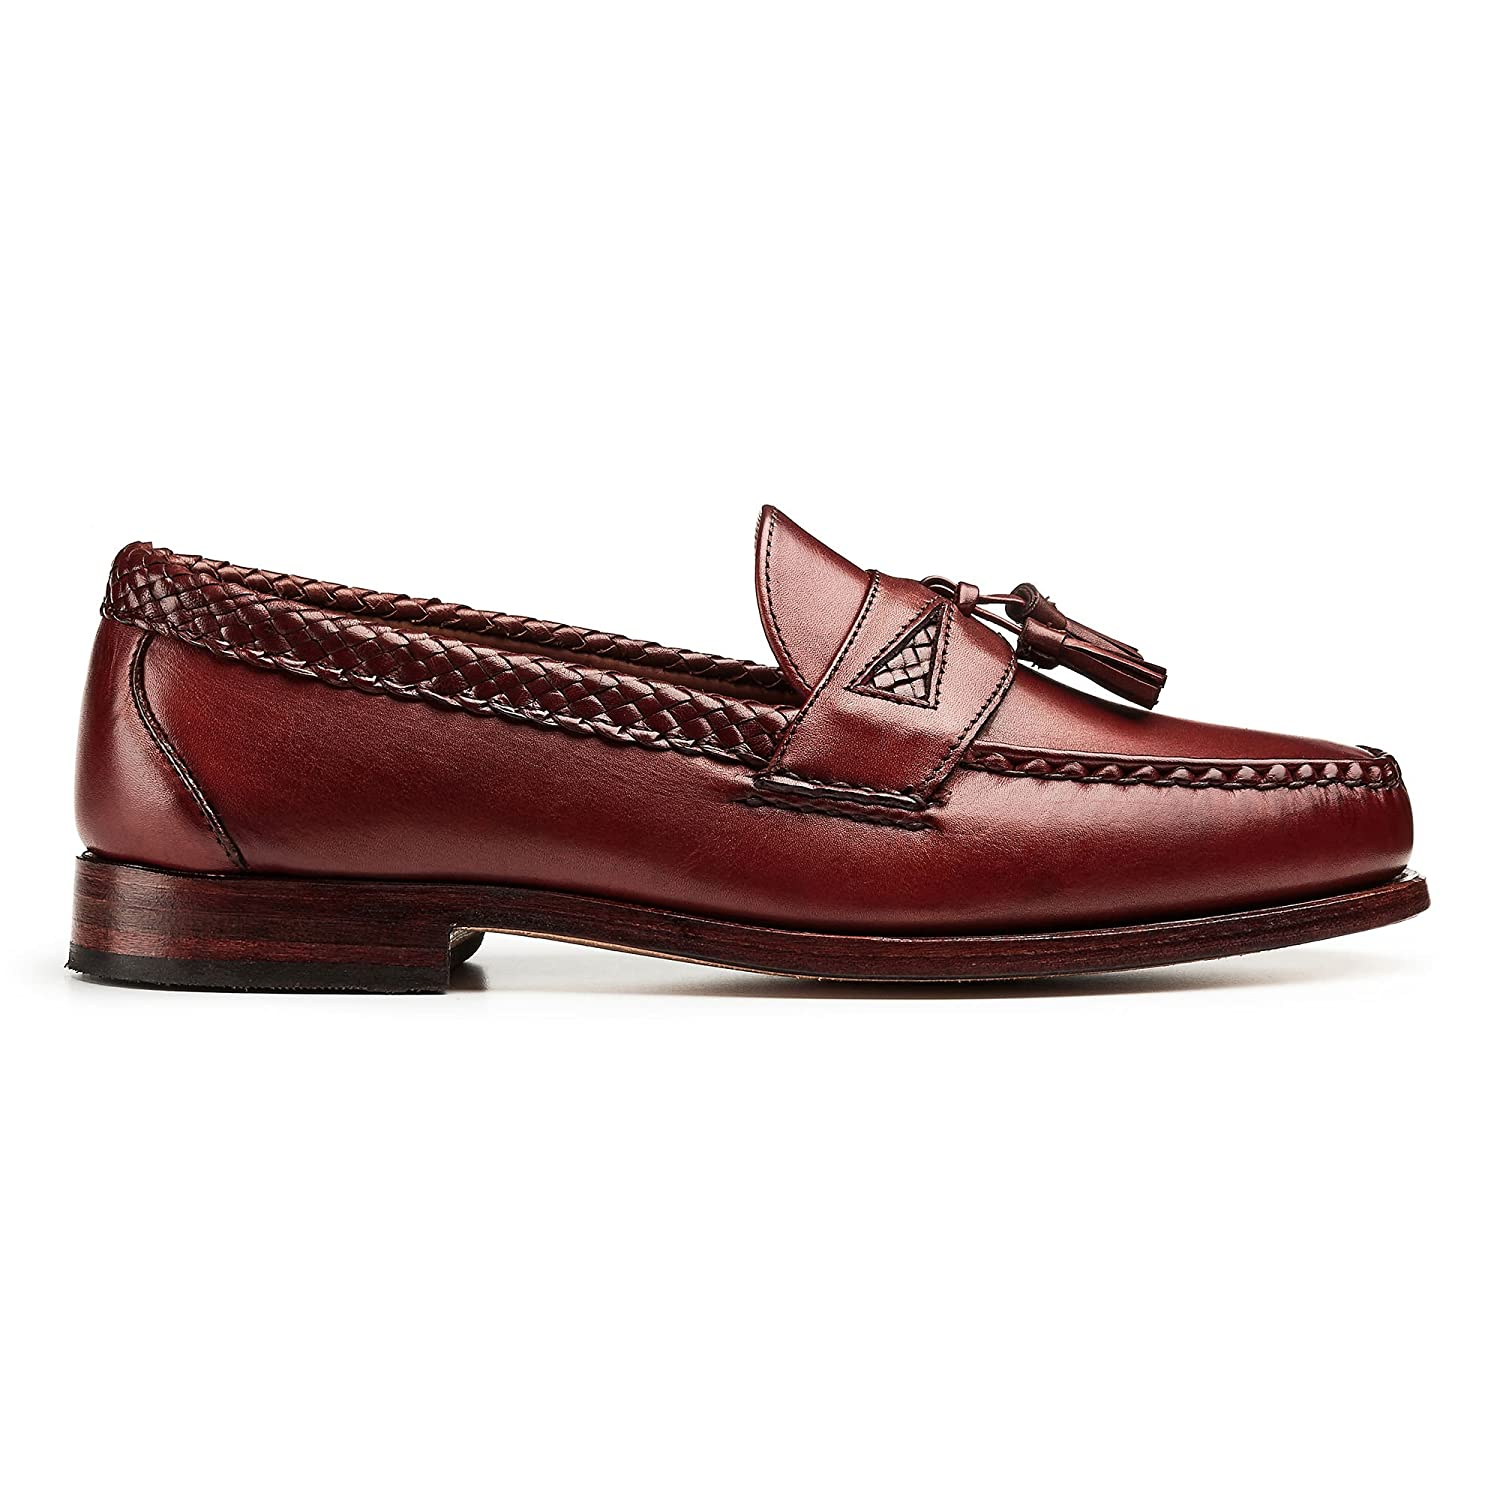 01219bc5fcd8d Amazon.com | Allen Edmonds Men's Maxfield Tassel Loafer | Loafers & Slip-Ons